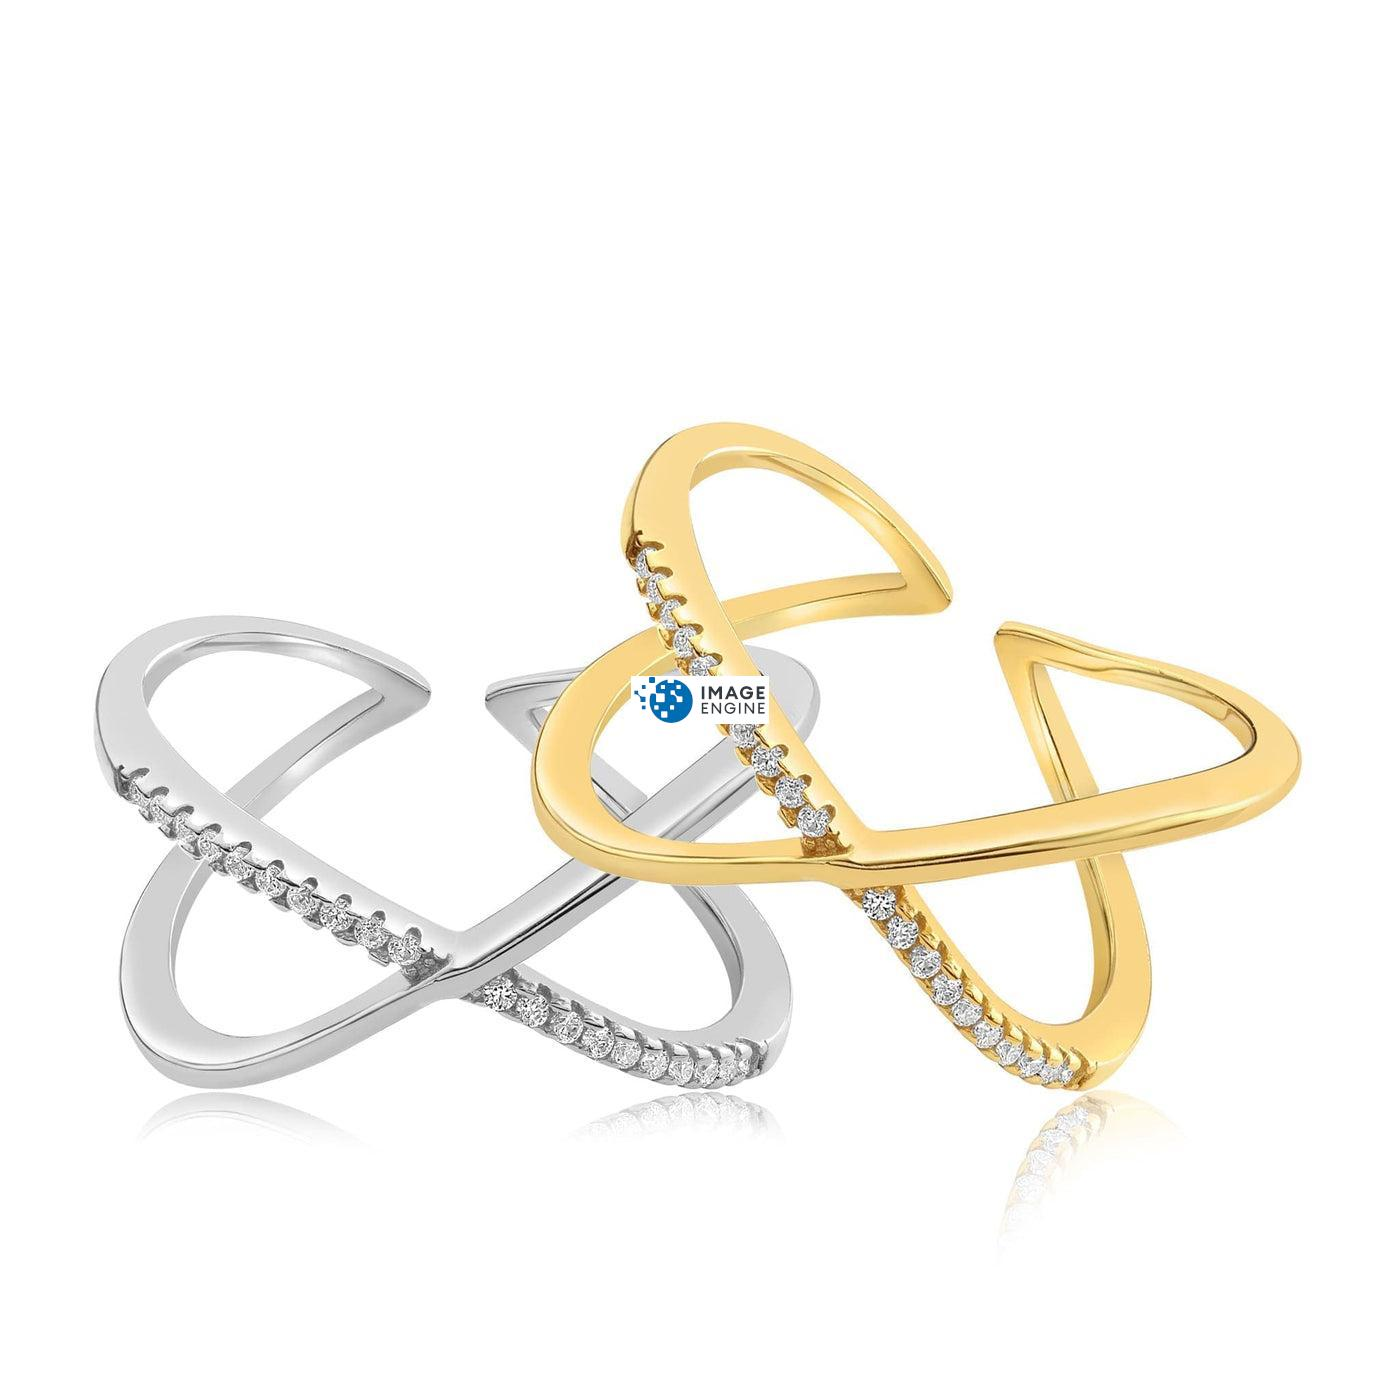 Nadia X Infinity Ring - Front View Side by Side - 18K Yellow Gold Vermeil and 925 Sterling Silver